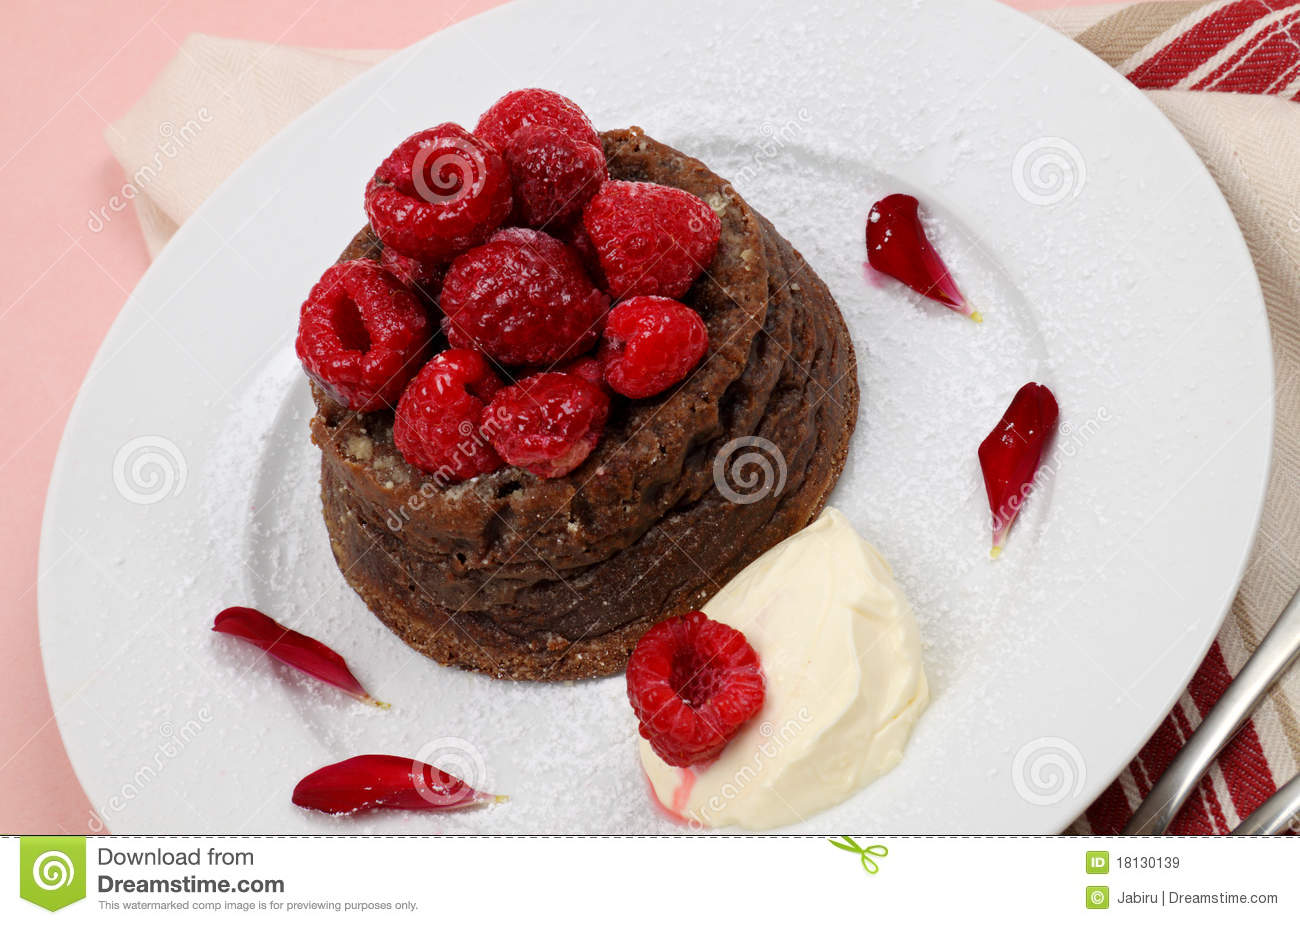 Raspberry Chocolate Dessert Royalty Free Stock Images